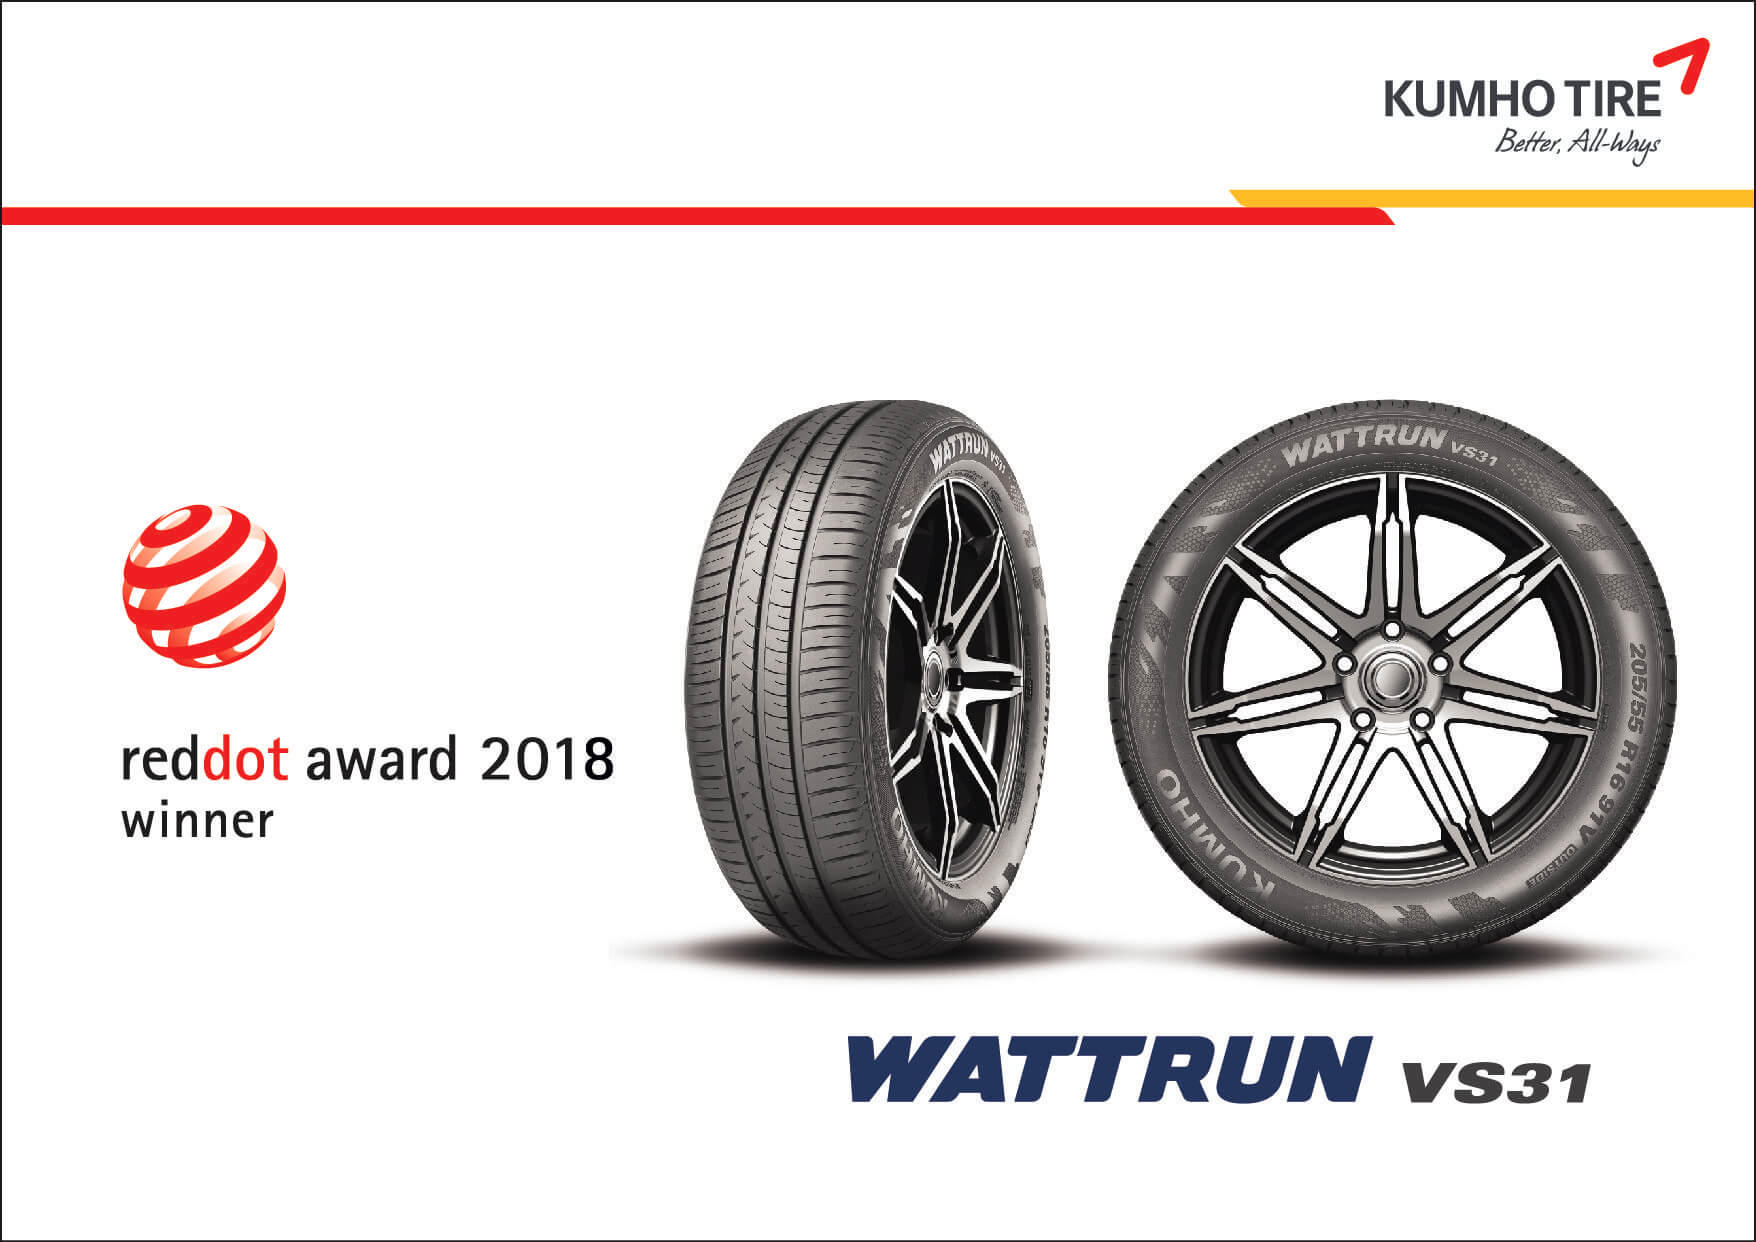 WATTRUN tyres by Kumho have been EV focused since 2013.